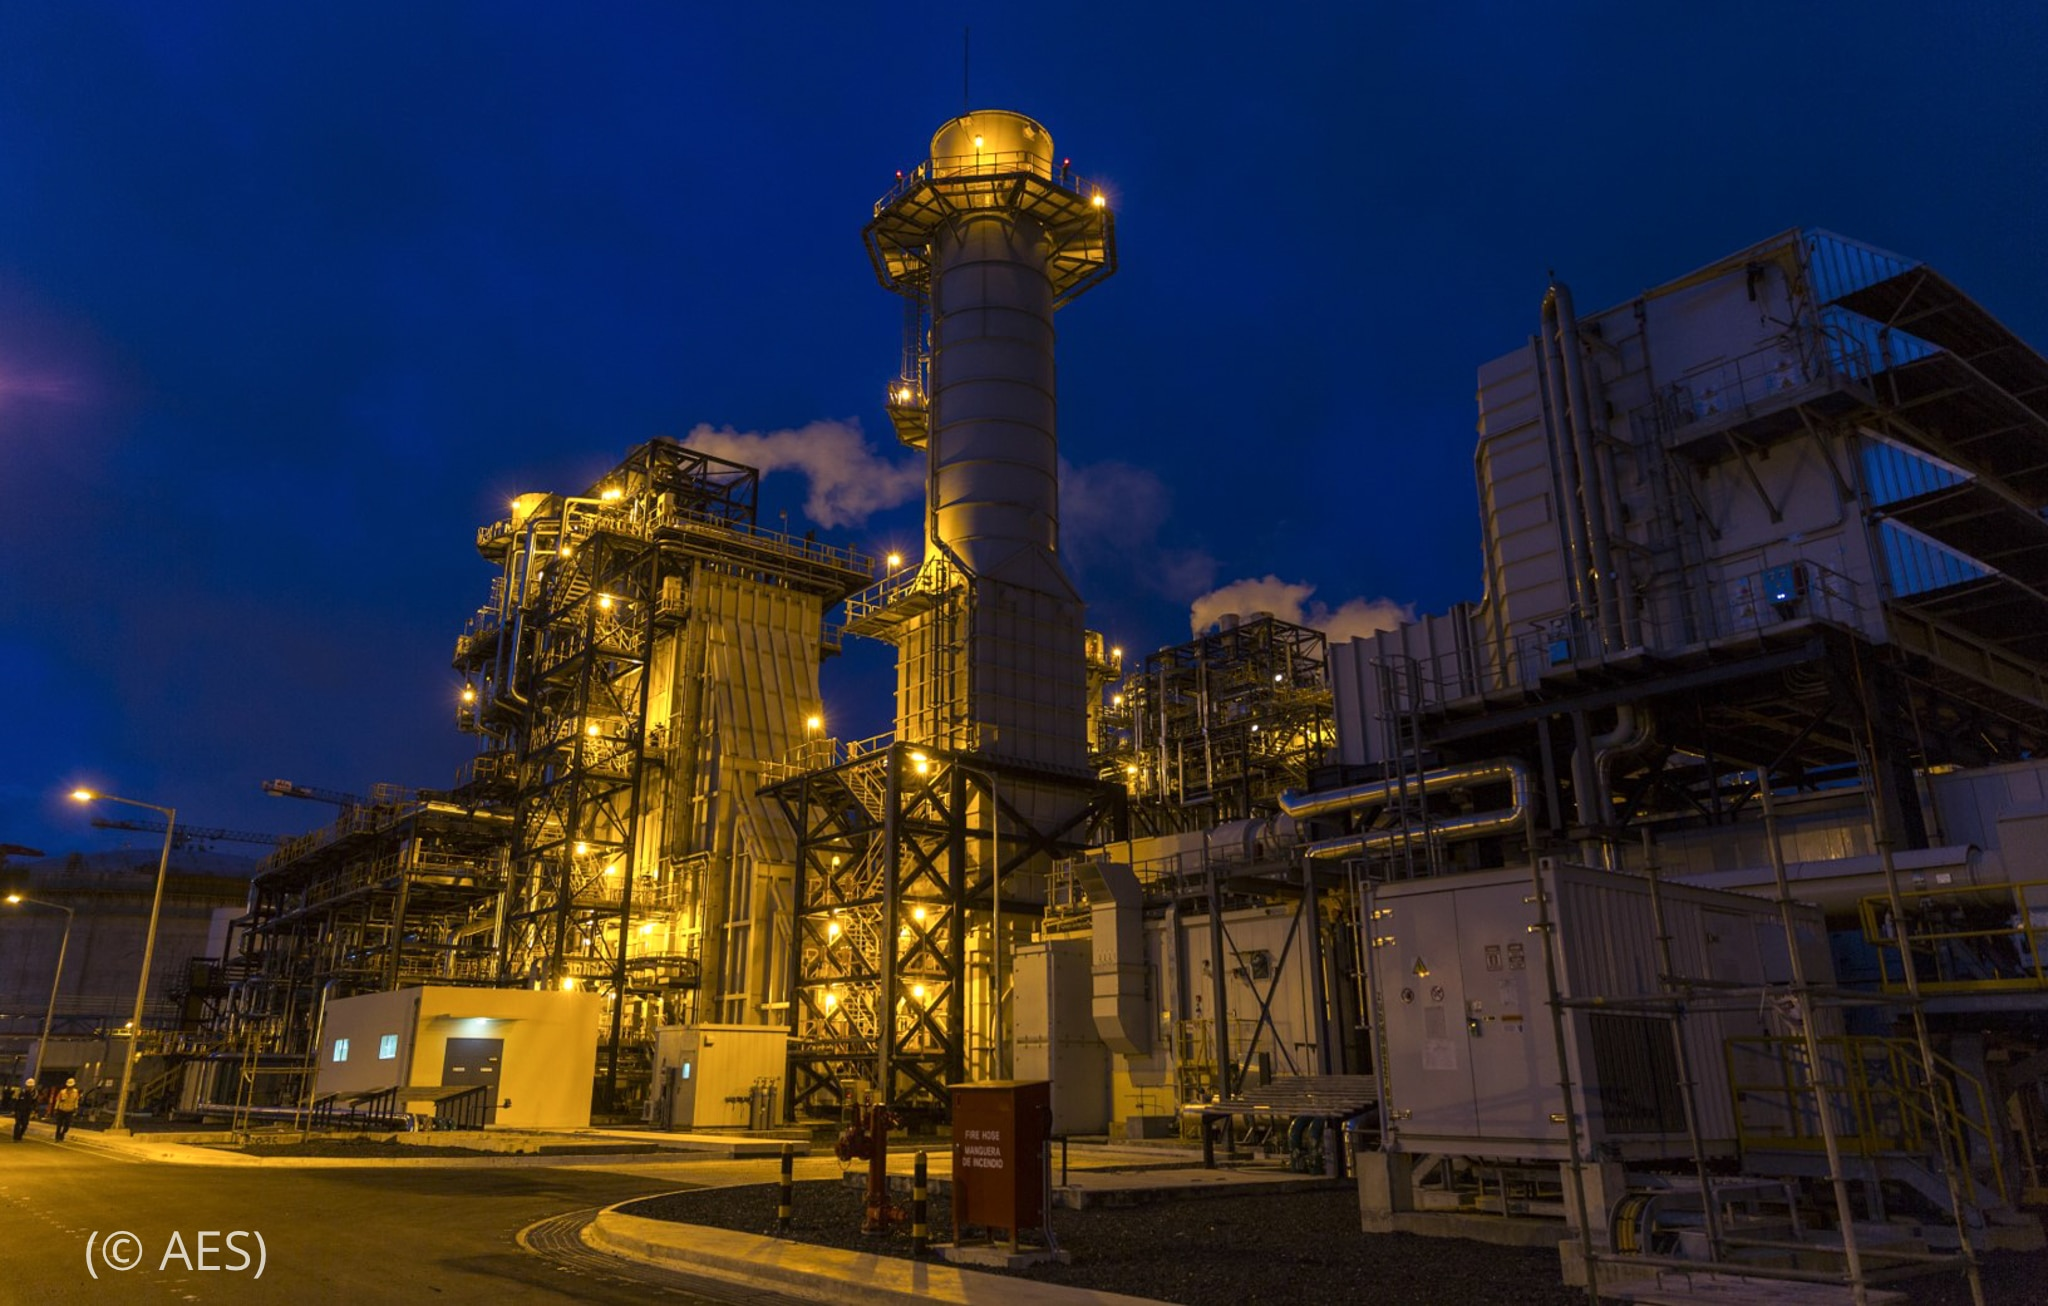 Night view of power plant (© AES)